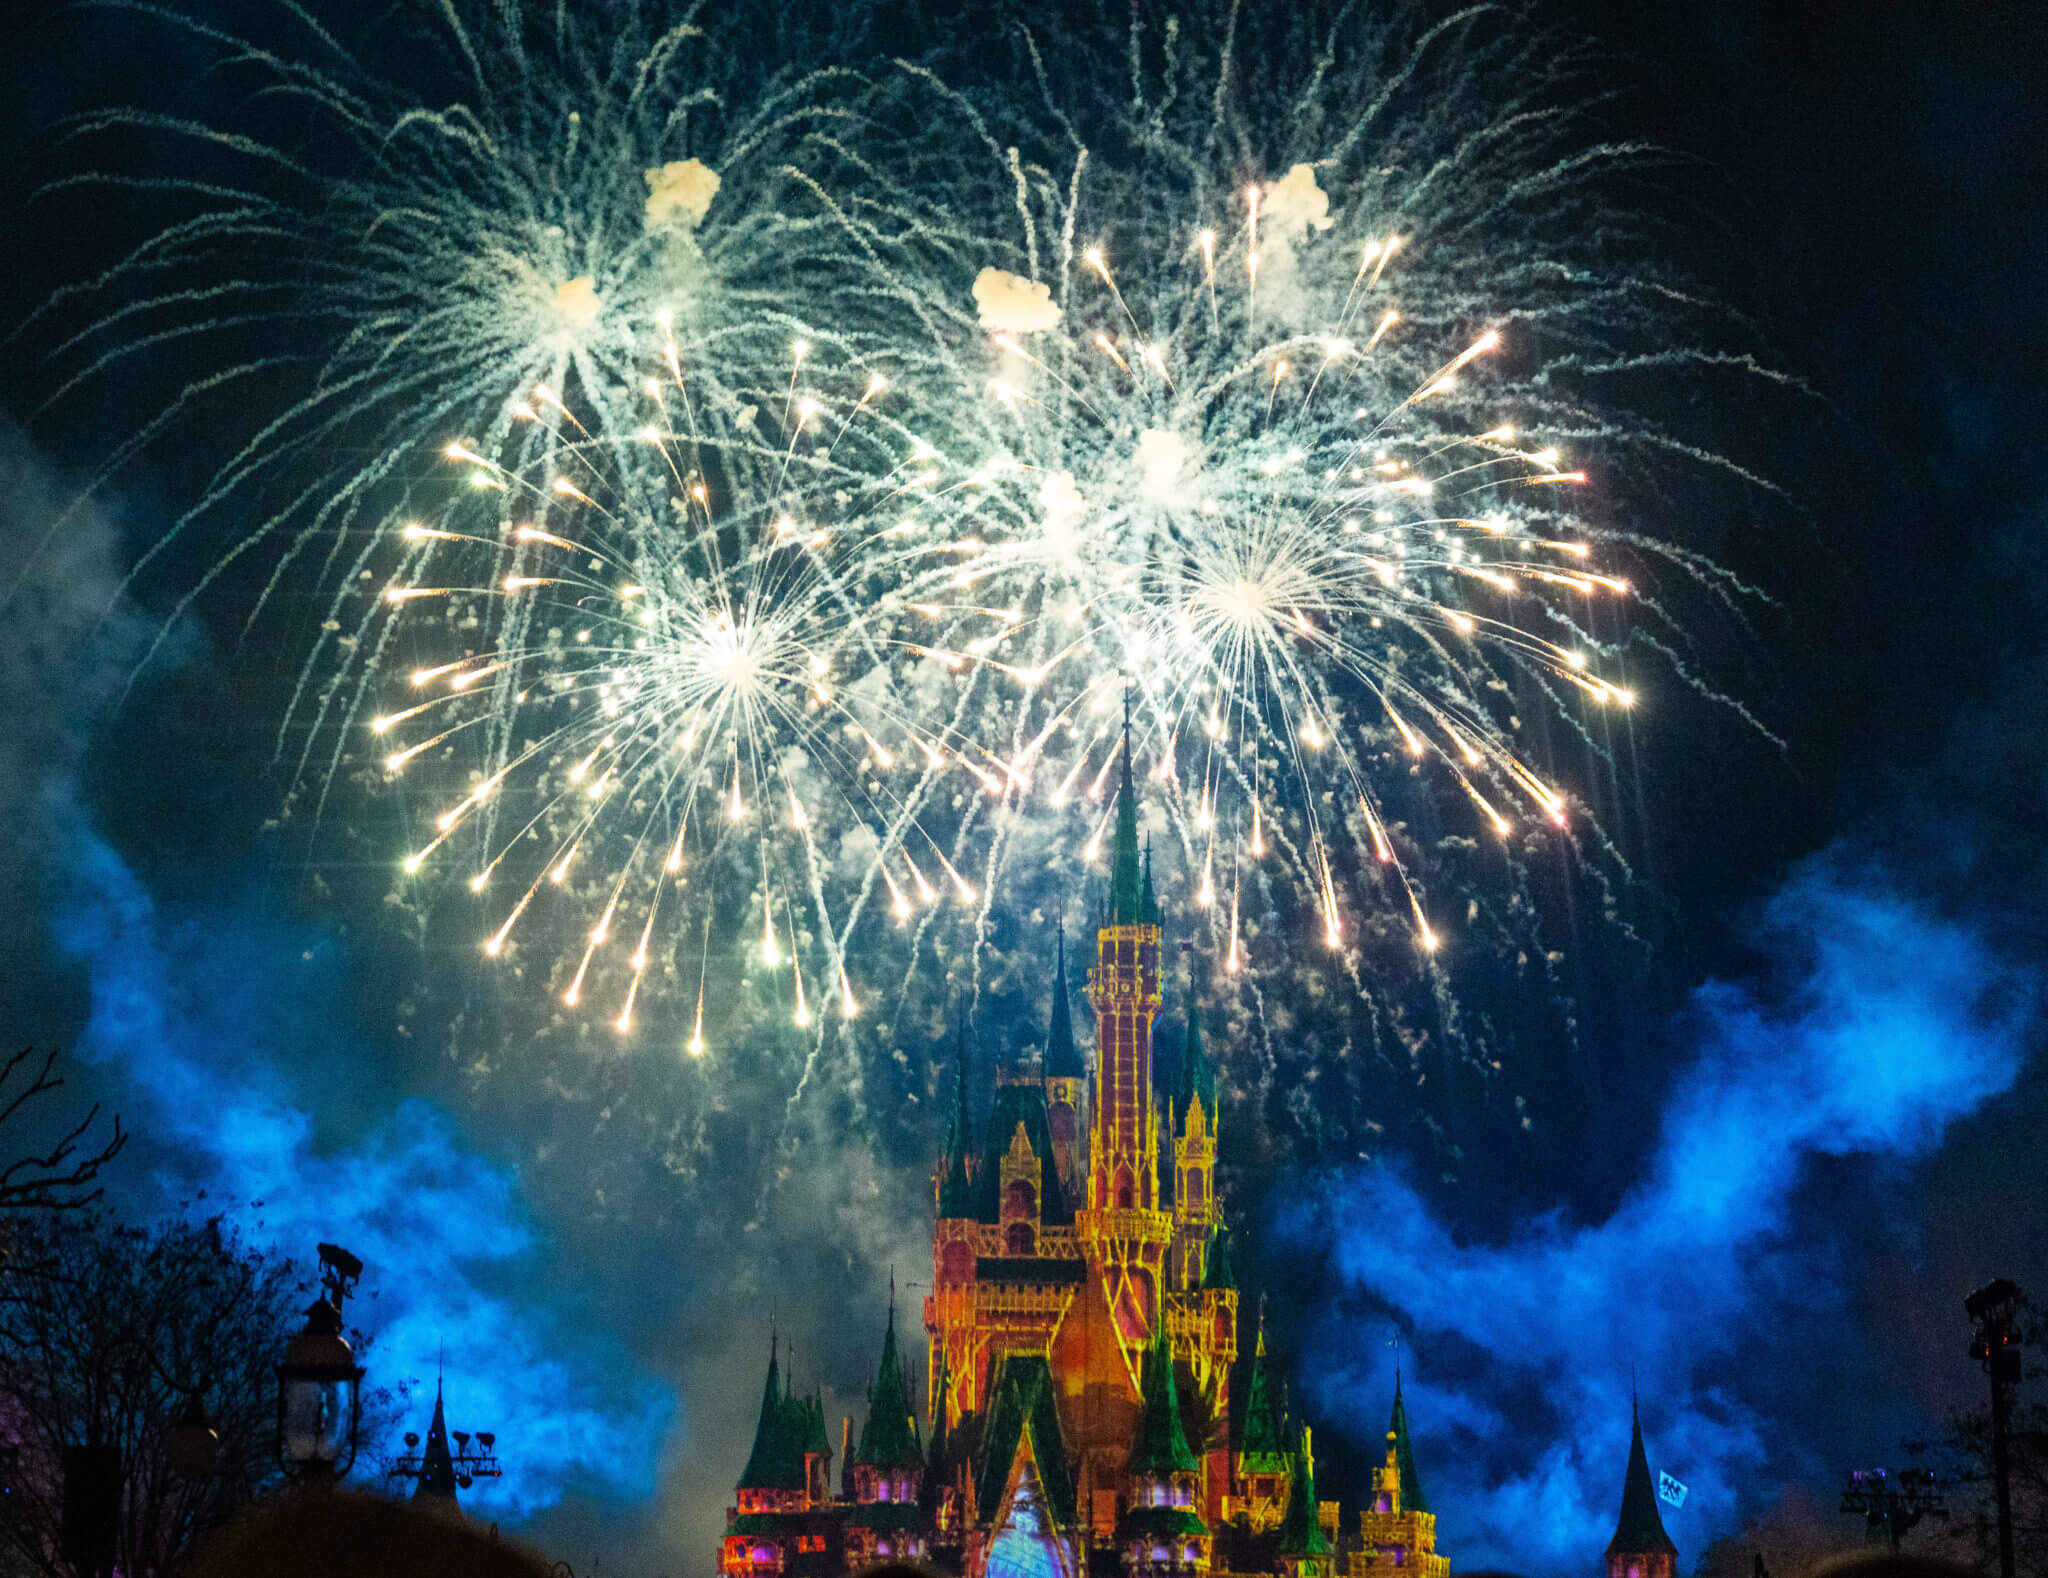 Happily Ever After Fireworks View from Main Street at Disney world in Magic Kingdom